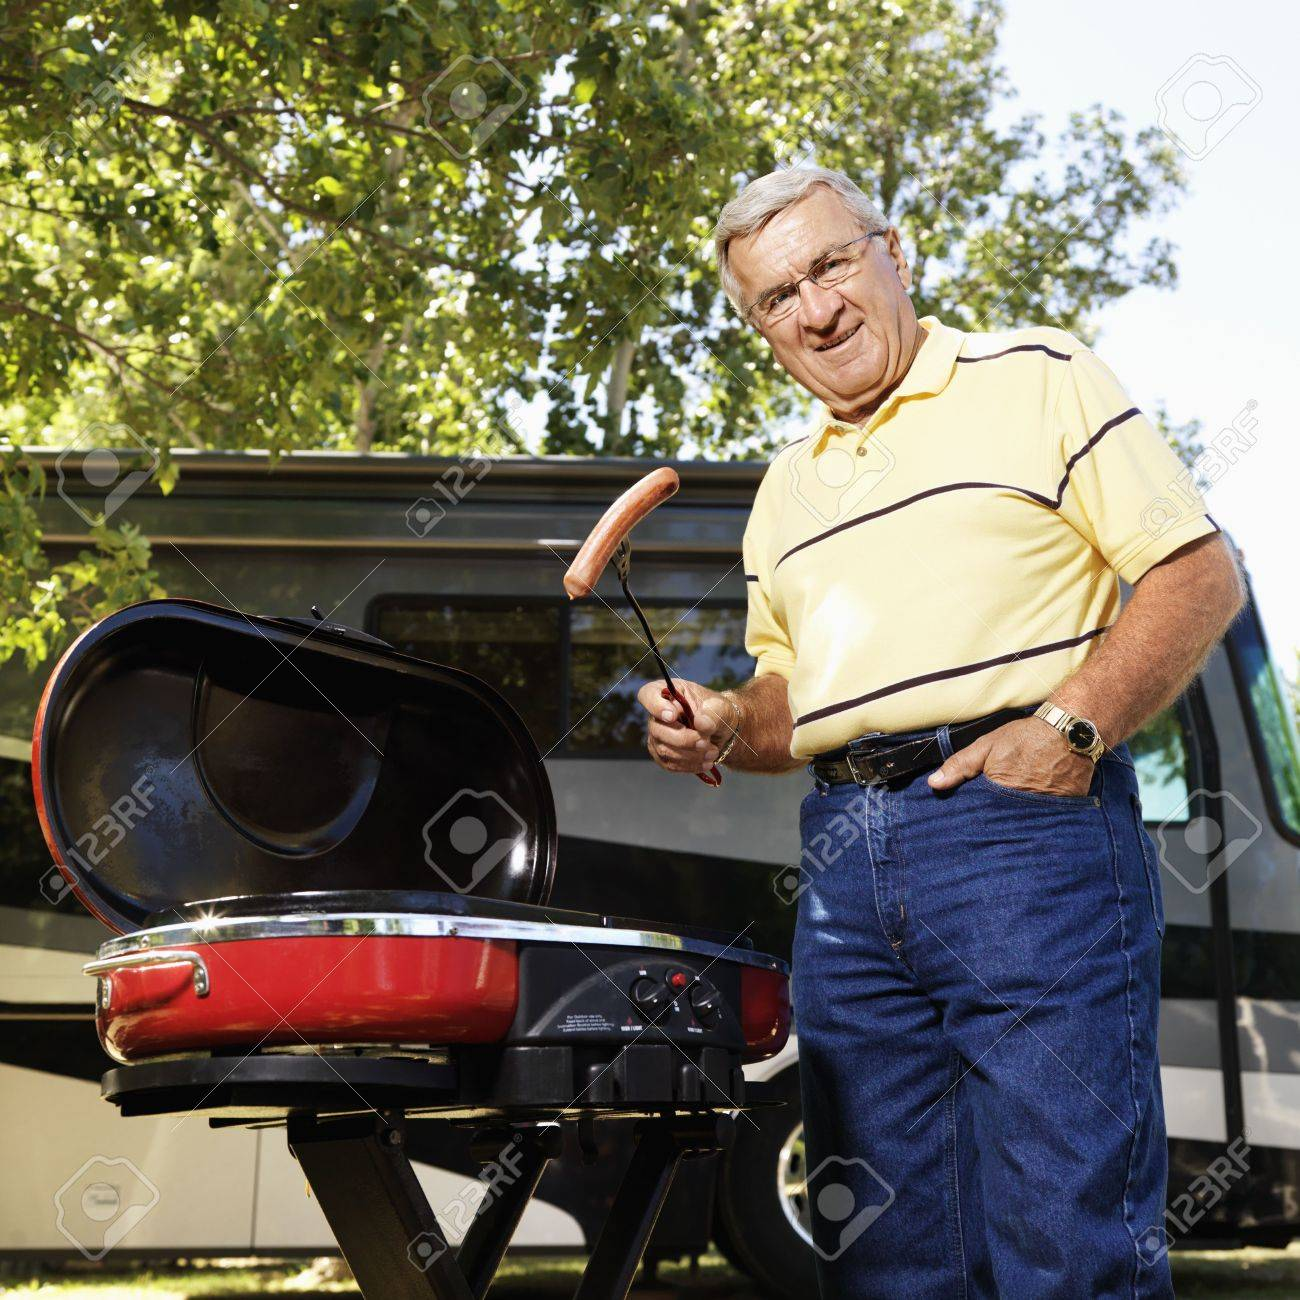 Senior adult man grilling hotdogs with RV in background. Stock Photo - 1850212